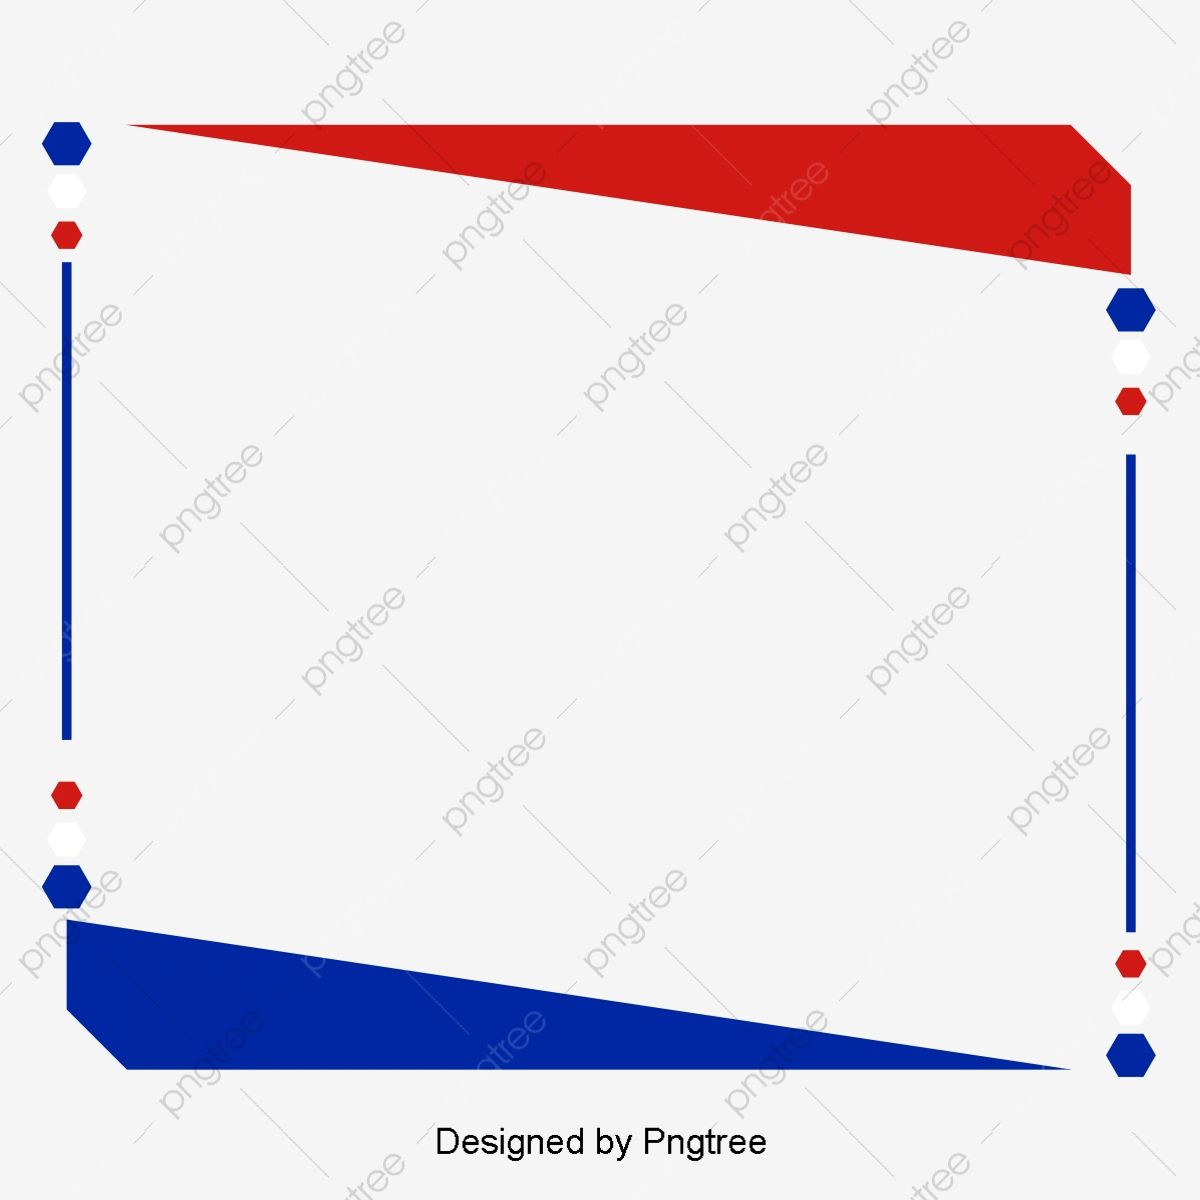 Red White And Blue Flag Borders Country Flag Border Frame Png And Vector With Transparent Background For Free Download Country Flags Blue Flag Transparent Background